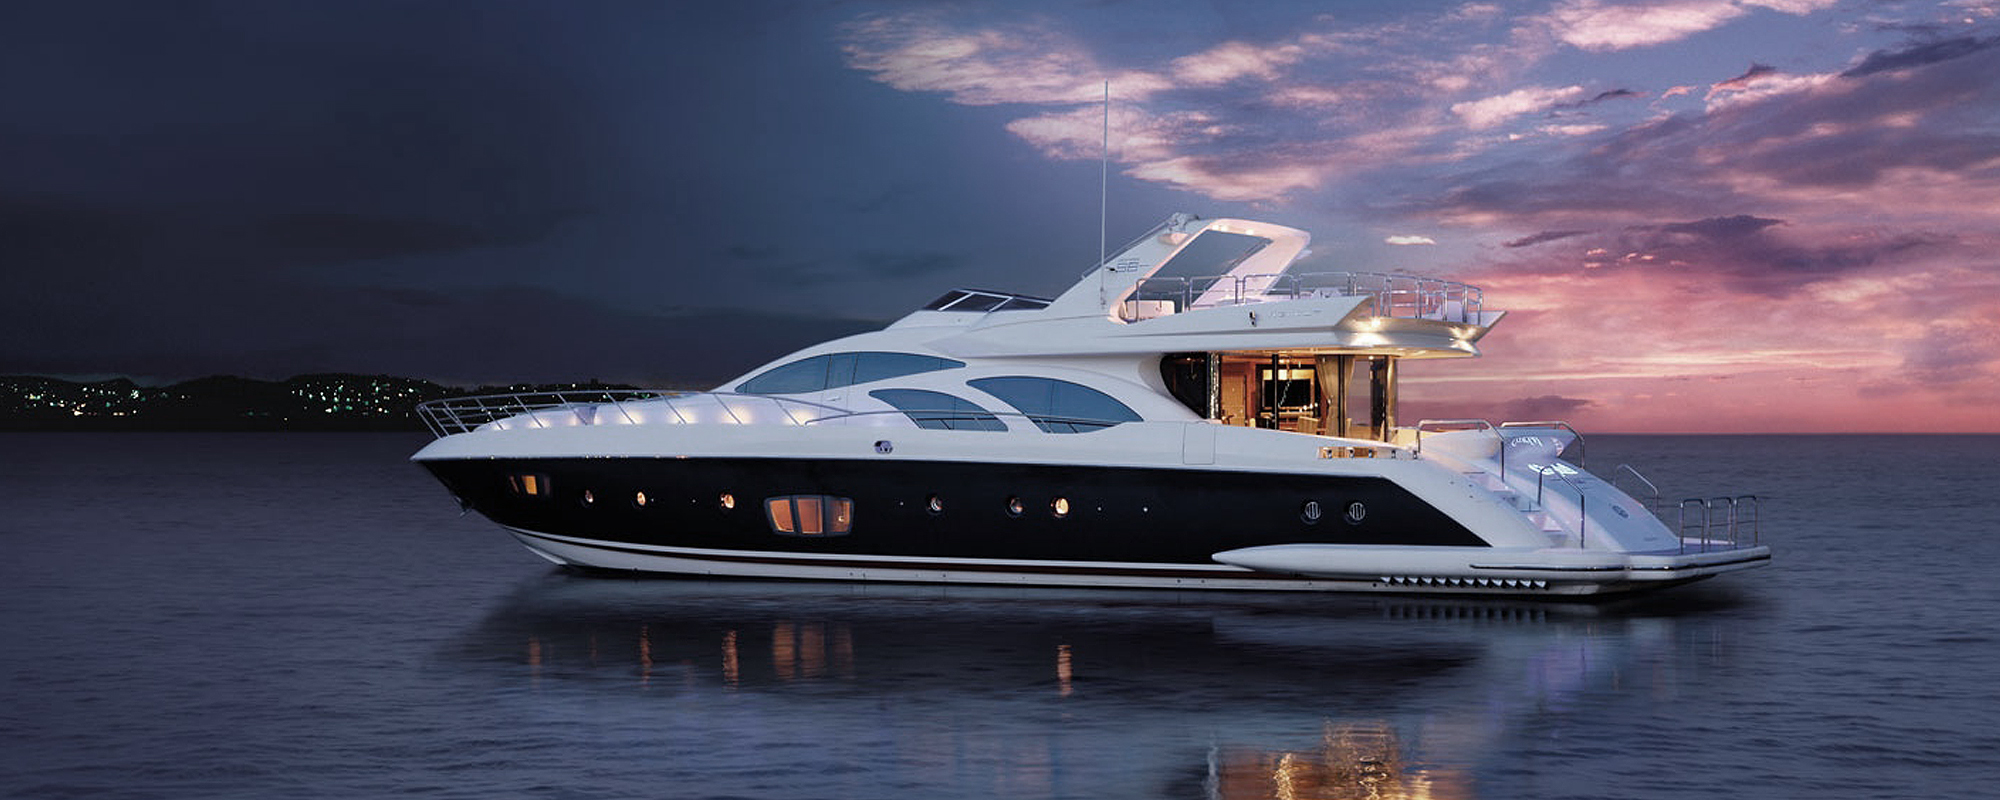 Honeymoon yachts for charter